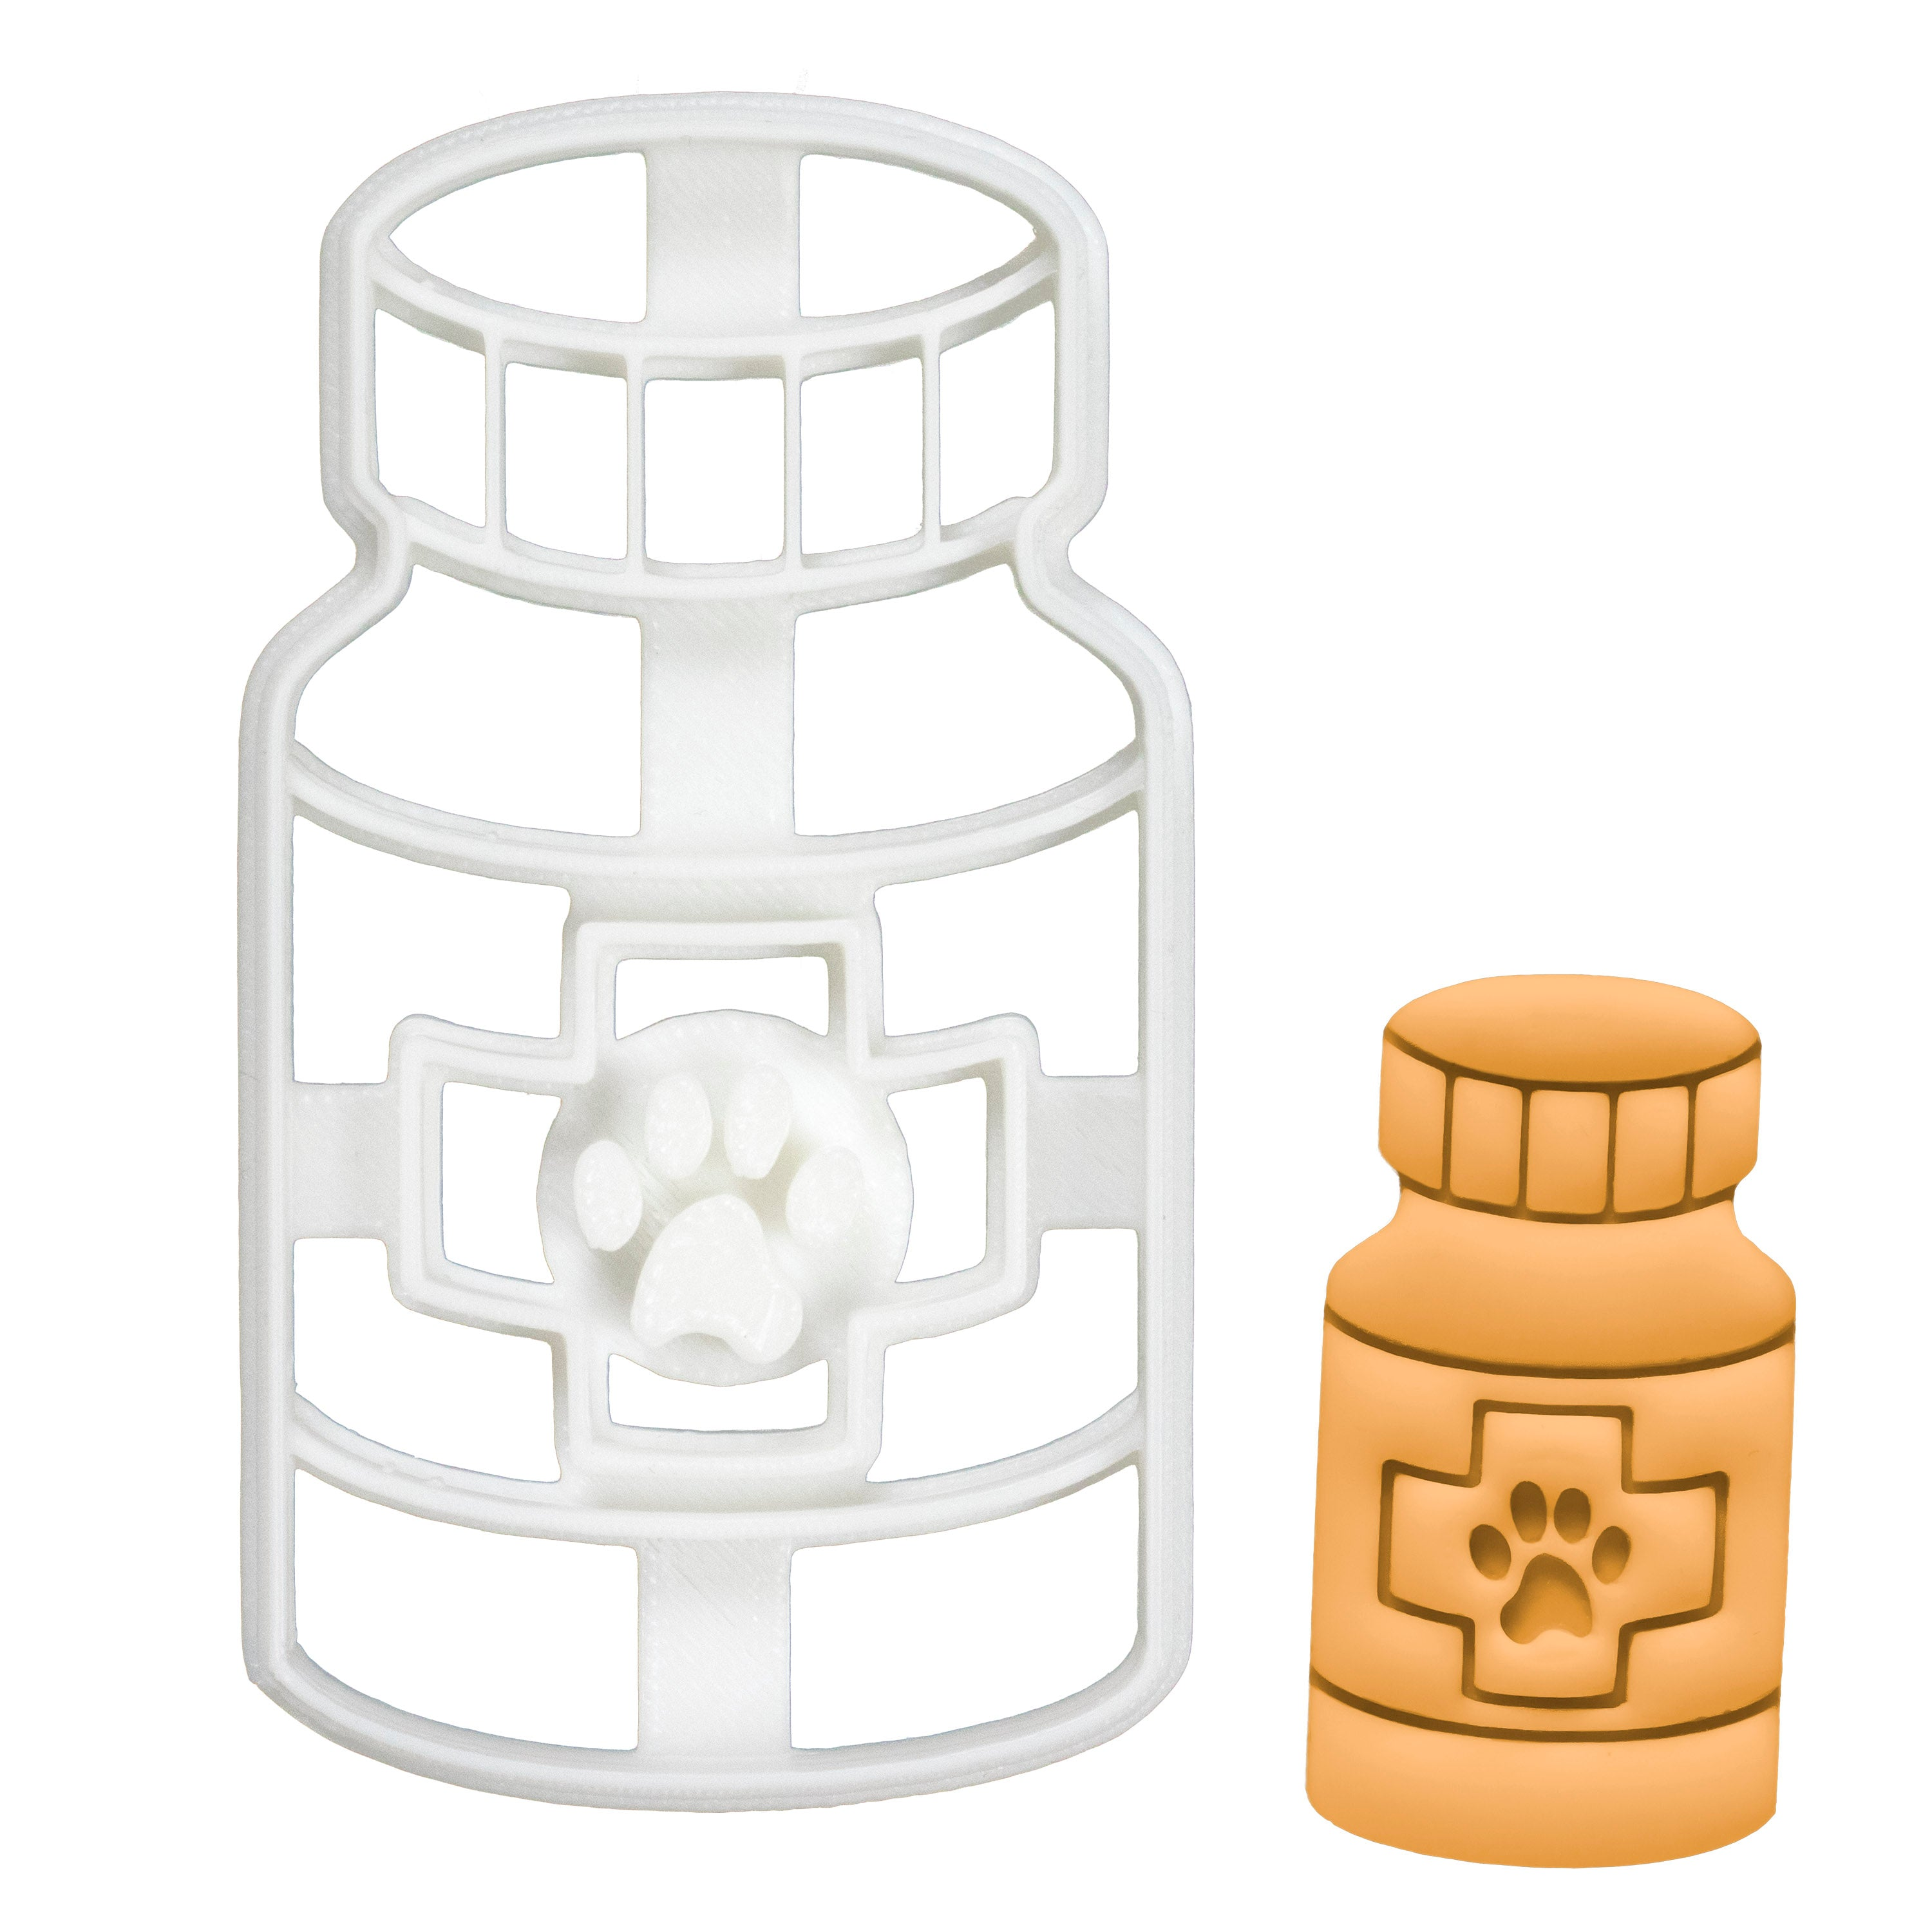 Set of 3 Dog Visit Cookie Cutters: Cone of Shame, Bandaged Paw, and Pill Bottle